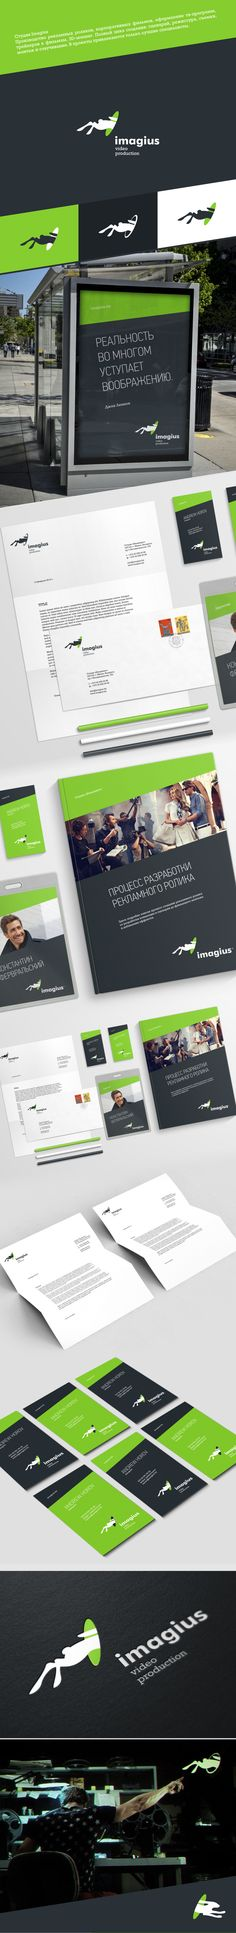 Video production company http://www.behance.net/gallery/imagius/11558233